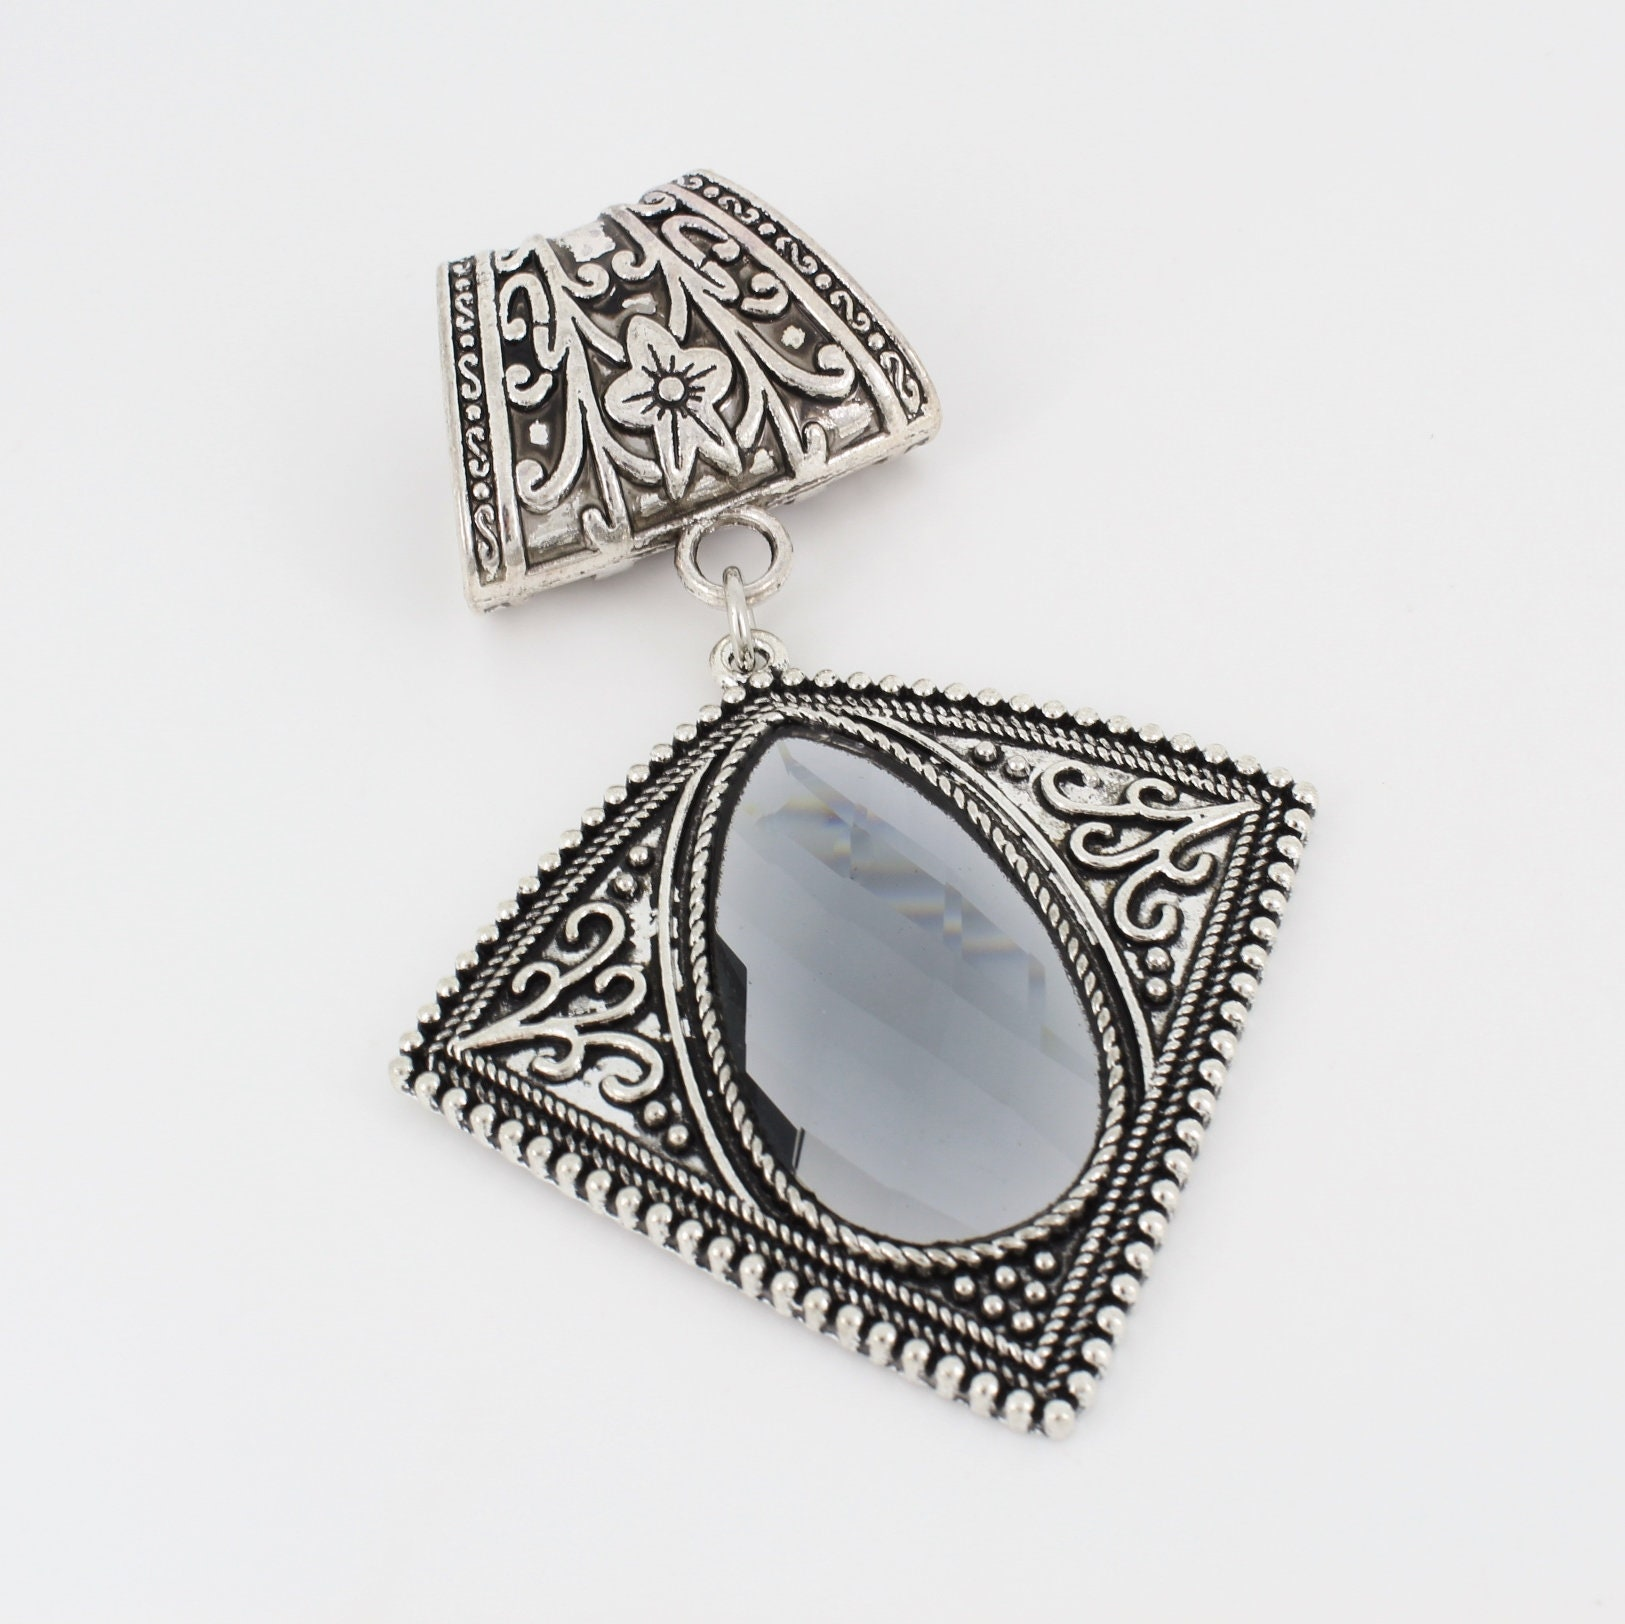 Art Nouveau Style Scarf Slide, Faceted Mirrored Glass set in Antique Silver - product images  of